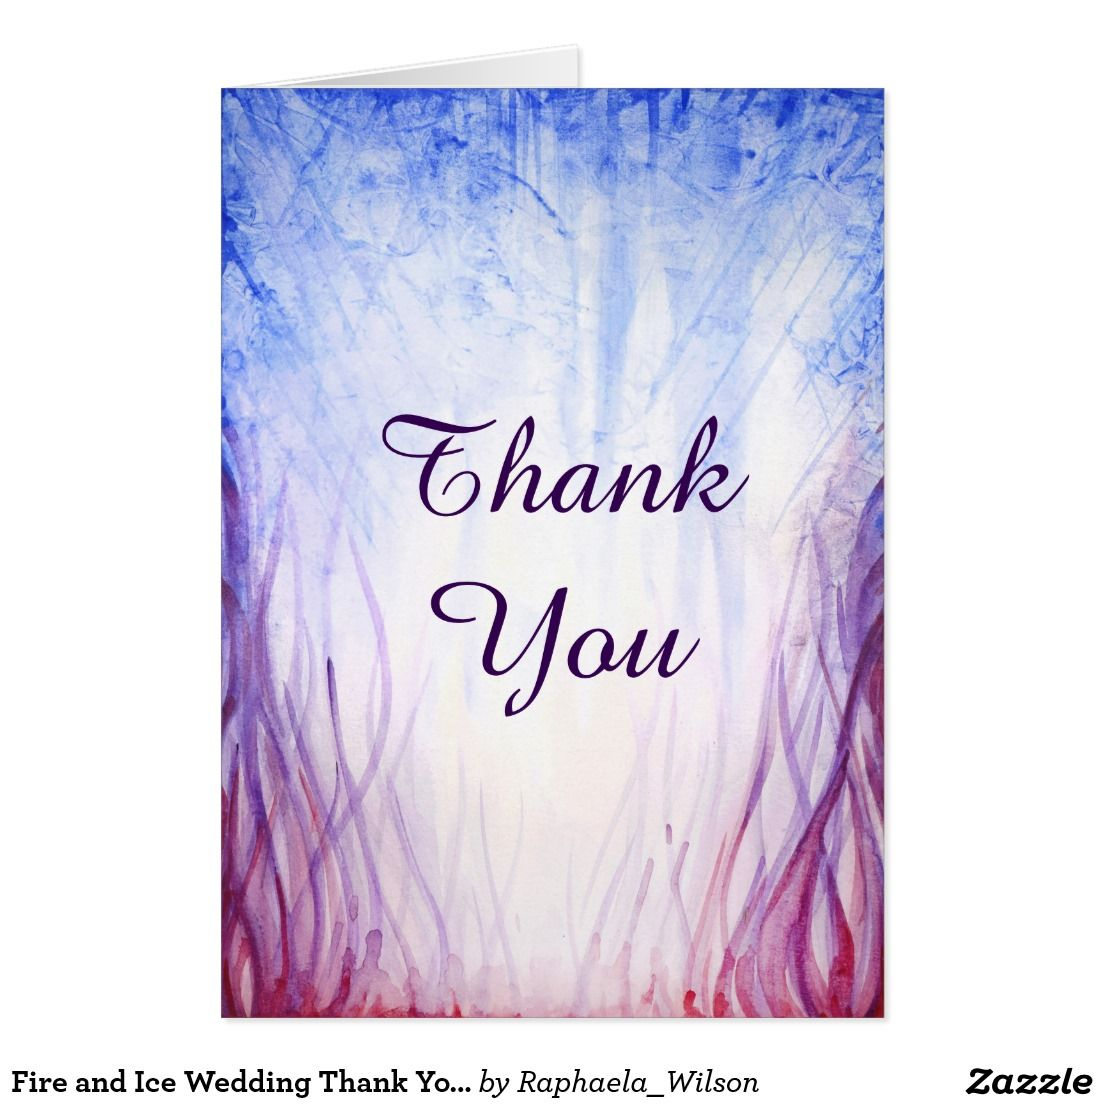 Fire and Ice Wedding Thank You Card Note | Fire and Ice Theme ...